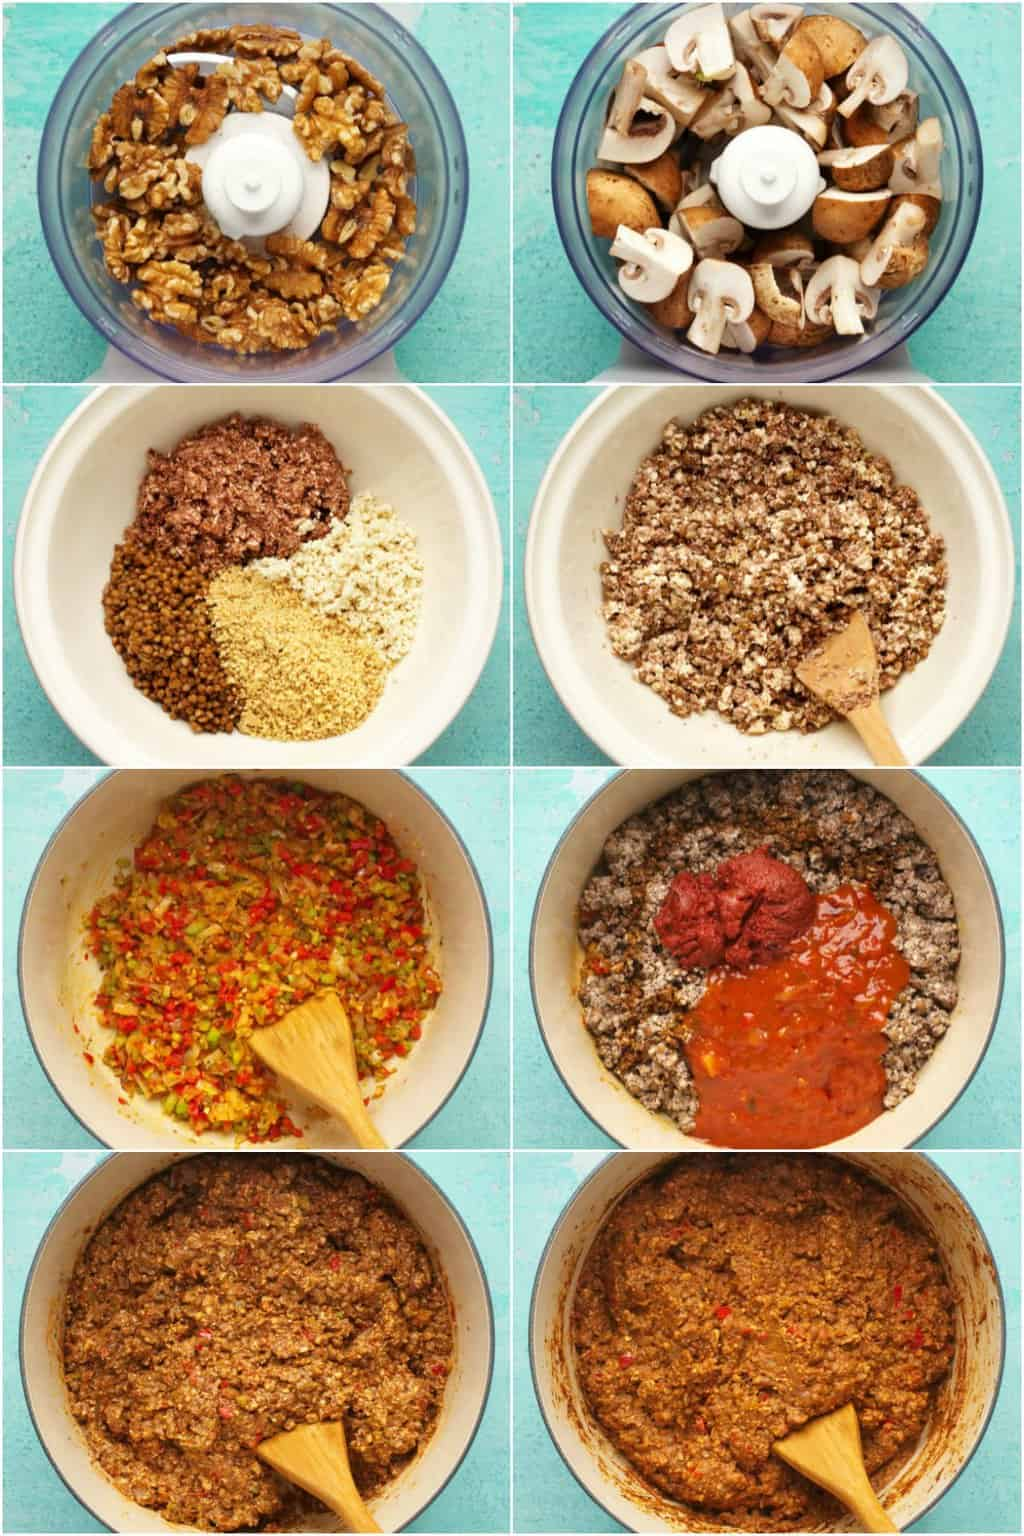 Step by step process photo collage of making the vegan mince for vegan Sloppy Joes.